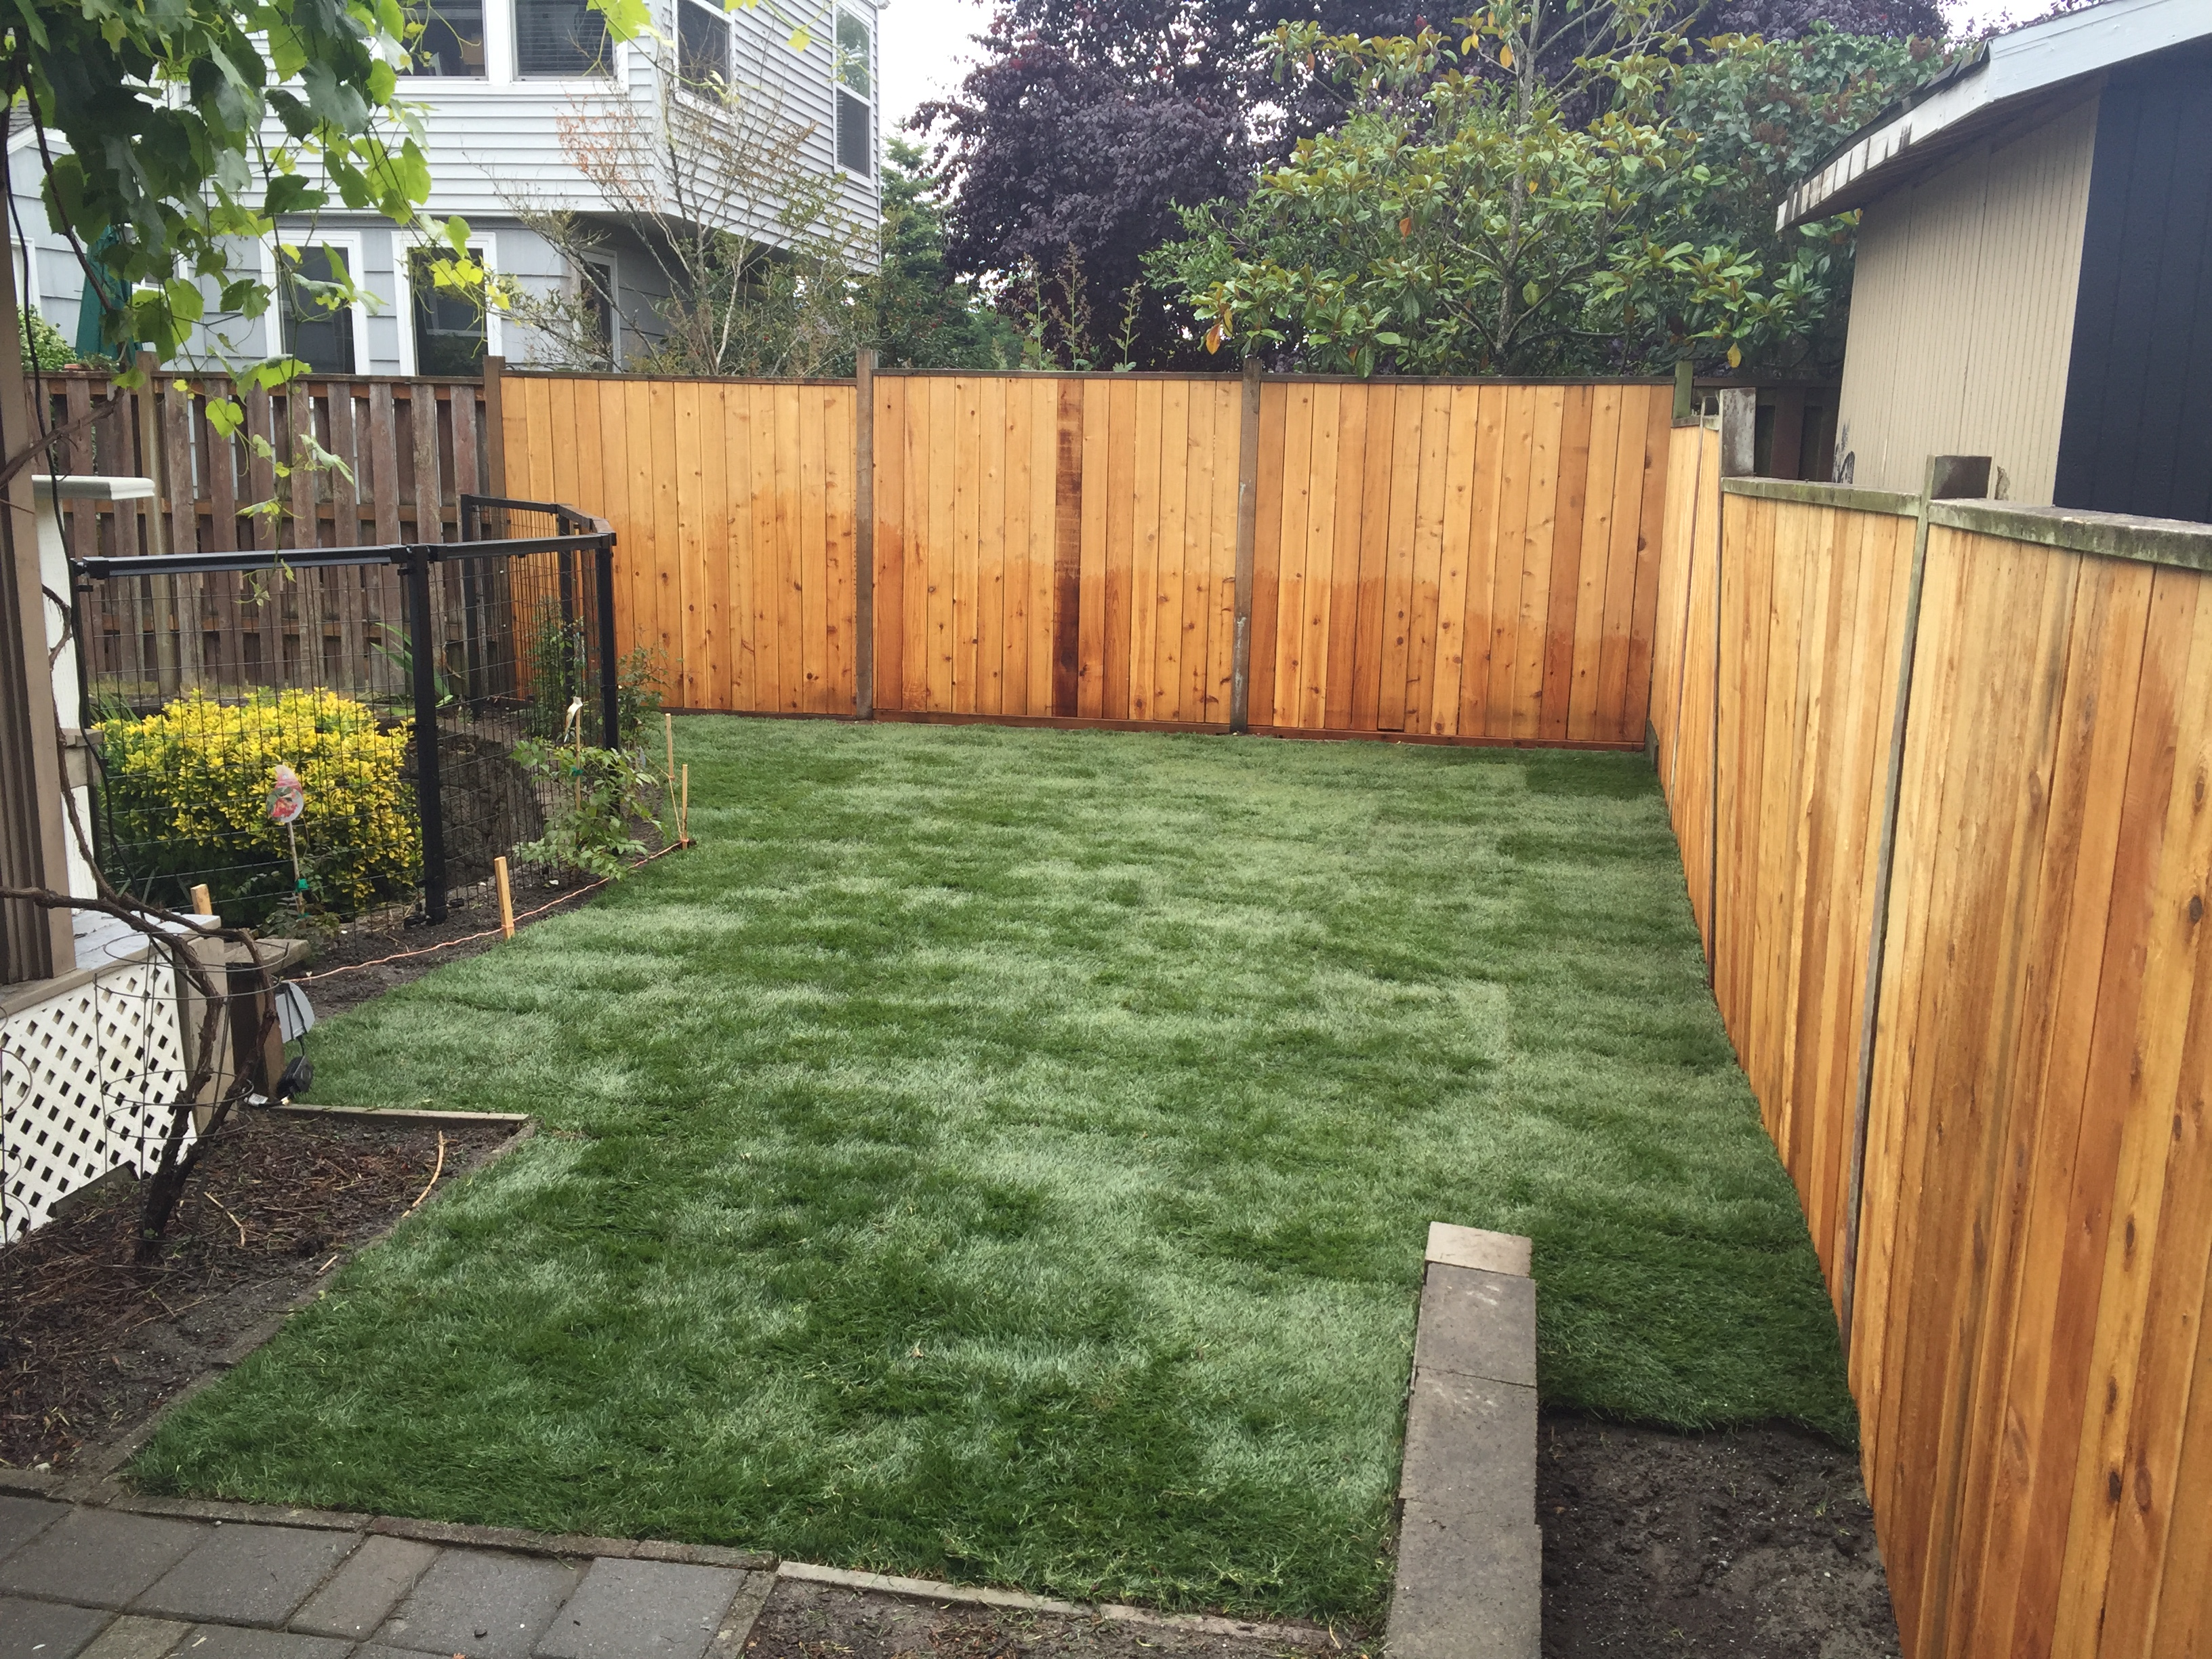 Sod and fence contractor